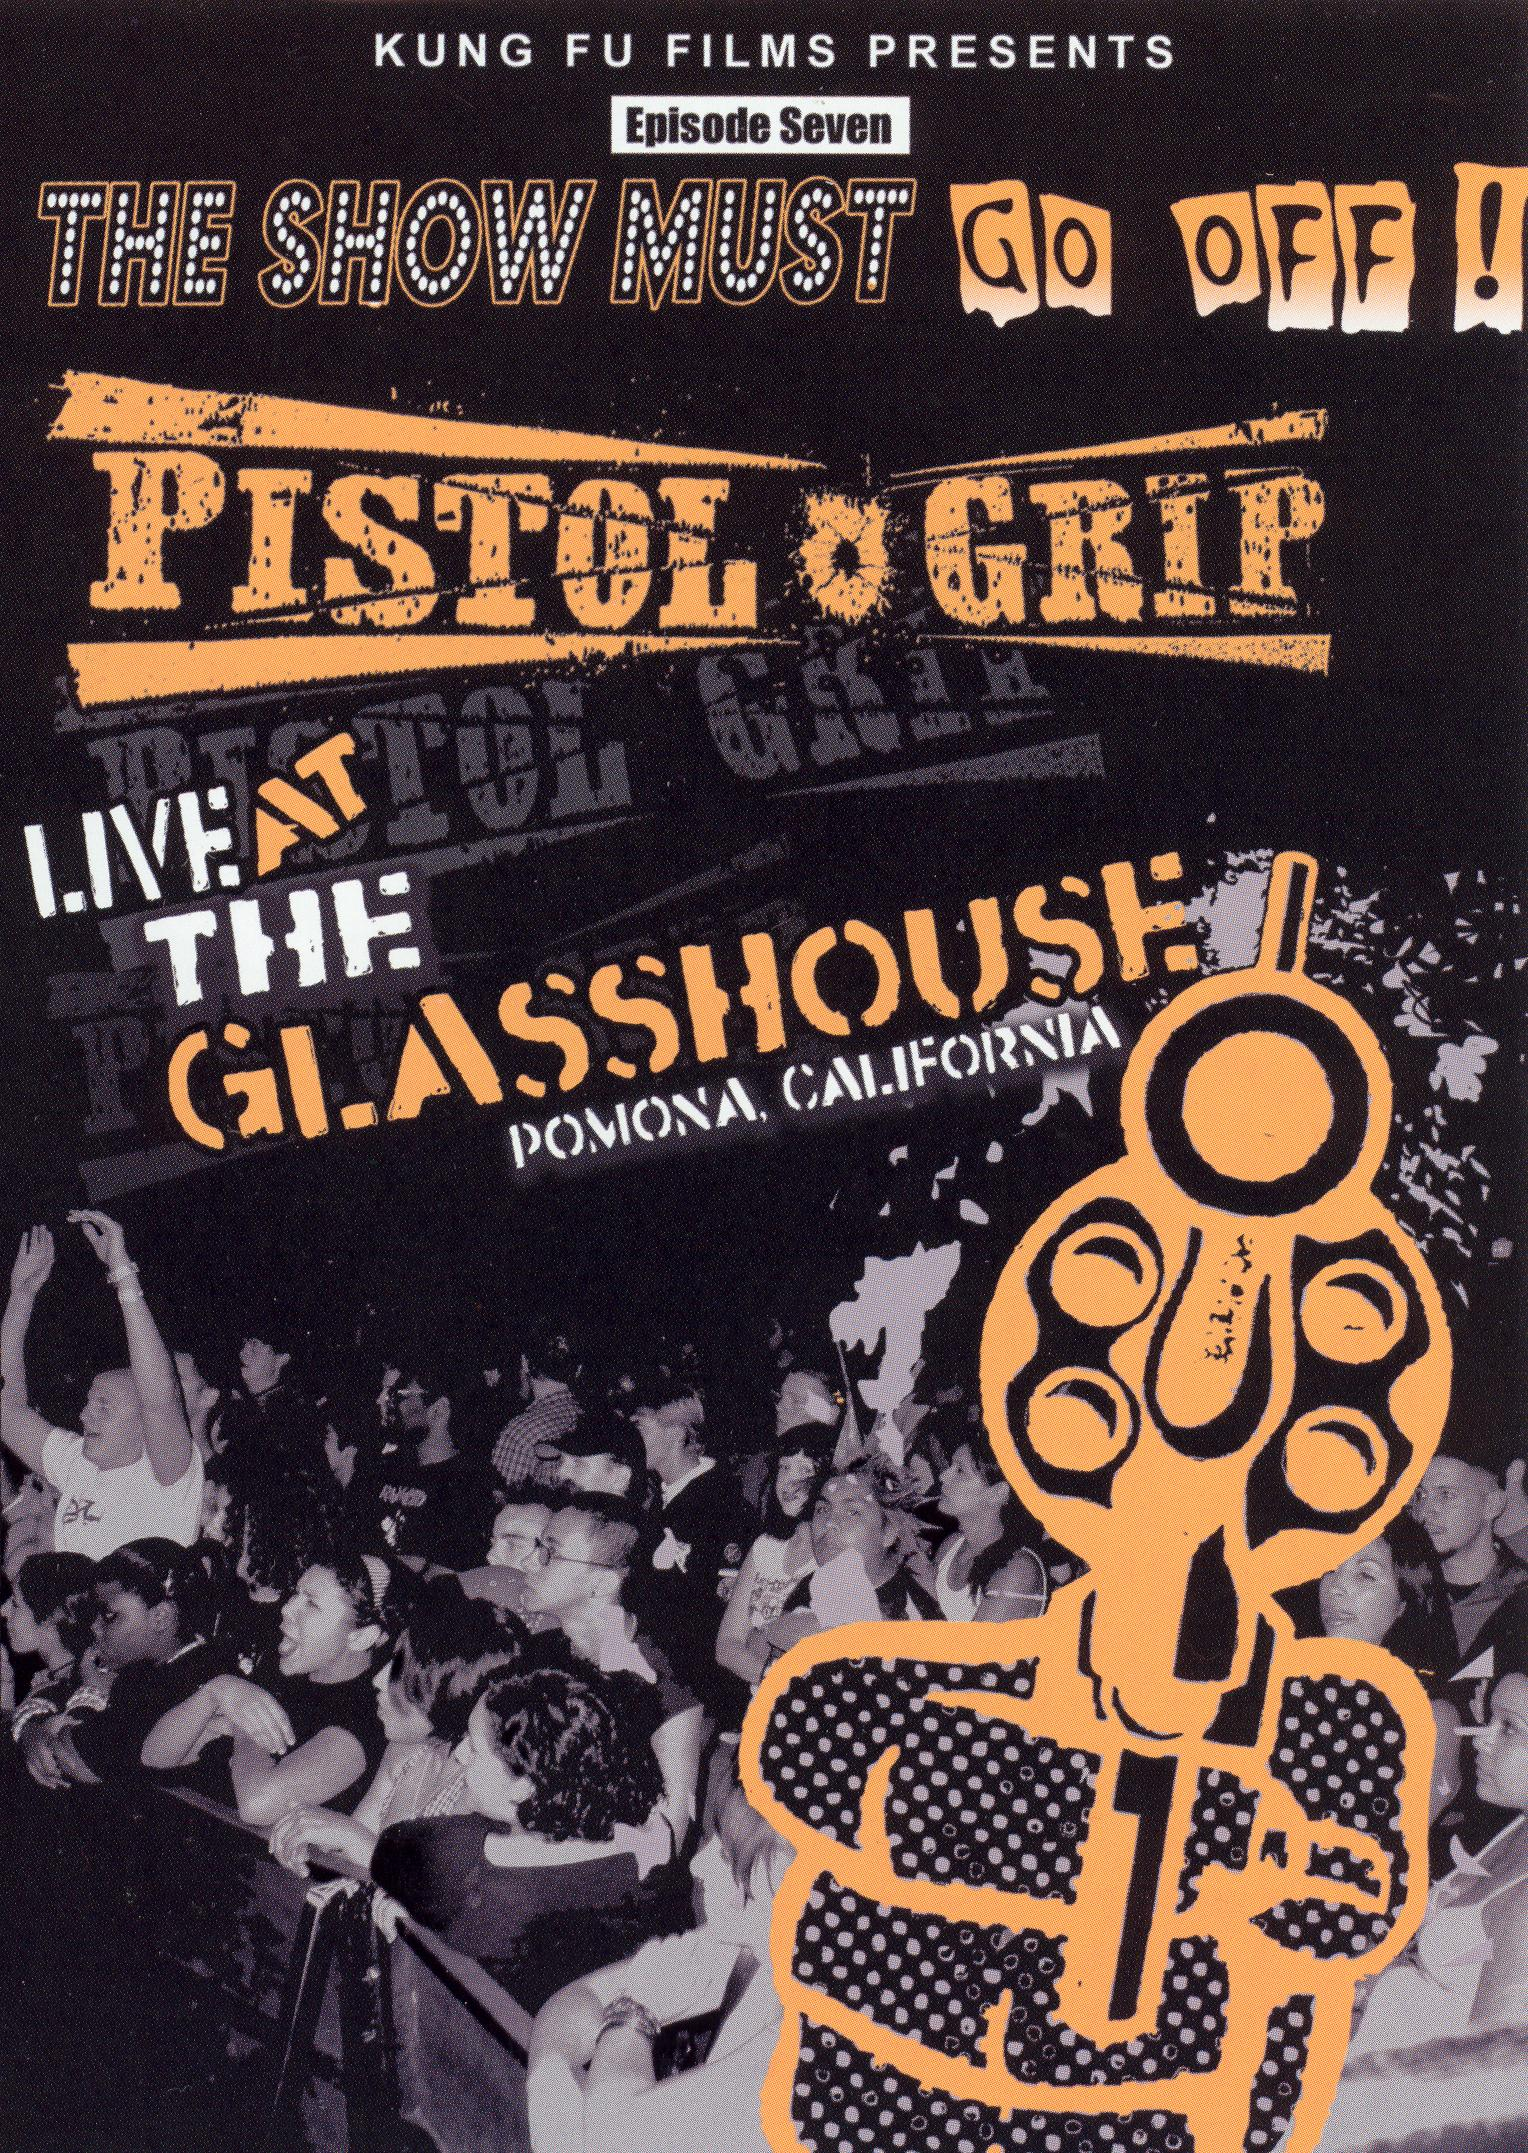 The Show Must Go Off! Pistol Grip - Live at The Glasshouse